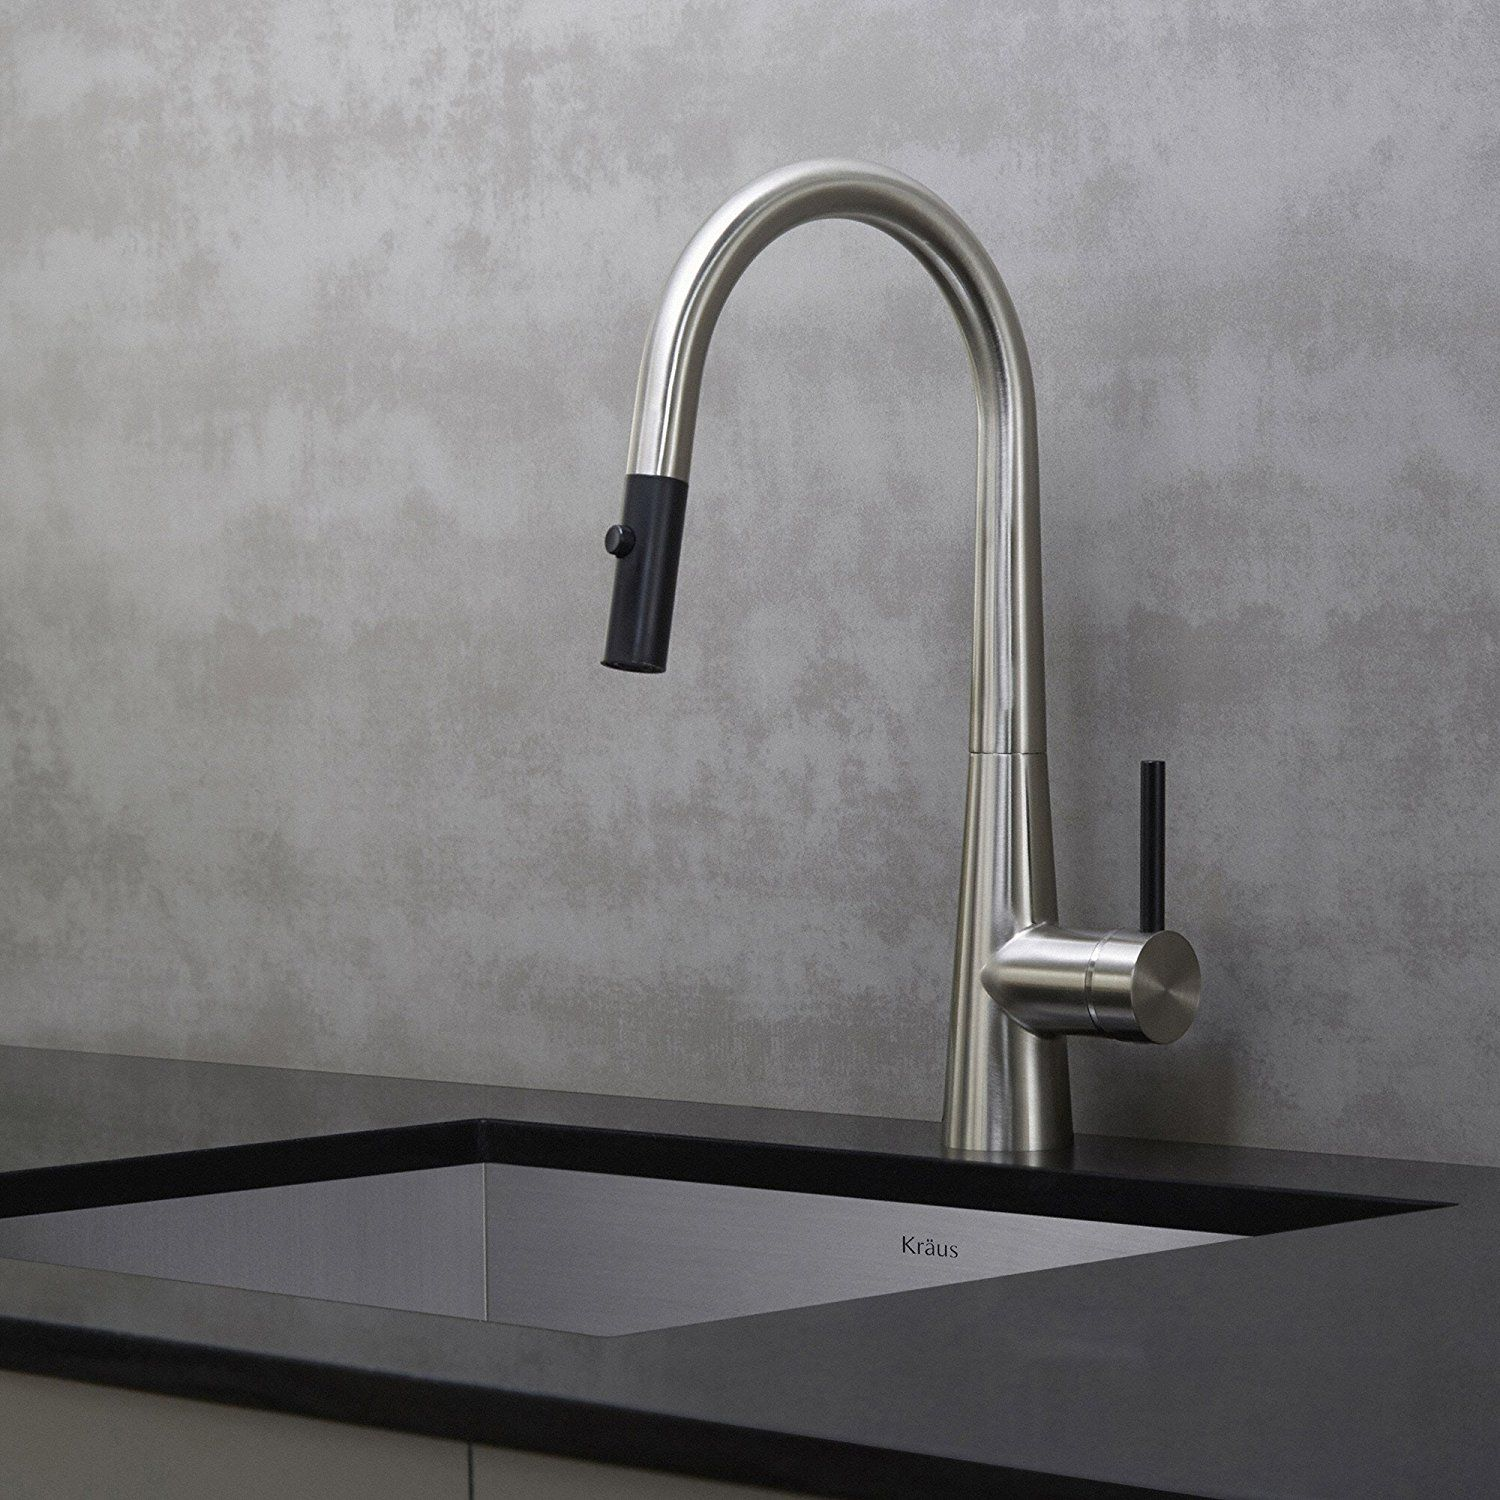 Kraus KPF 2620SS Modern Oletto Single Lever Pull Down Kitchen Faucet,  Stainless Steel